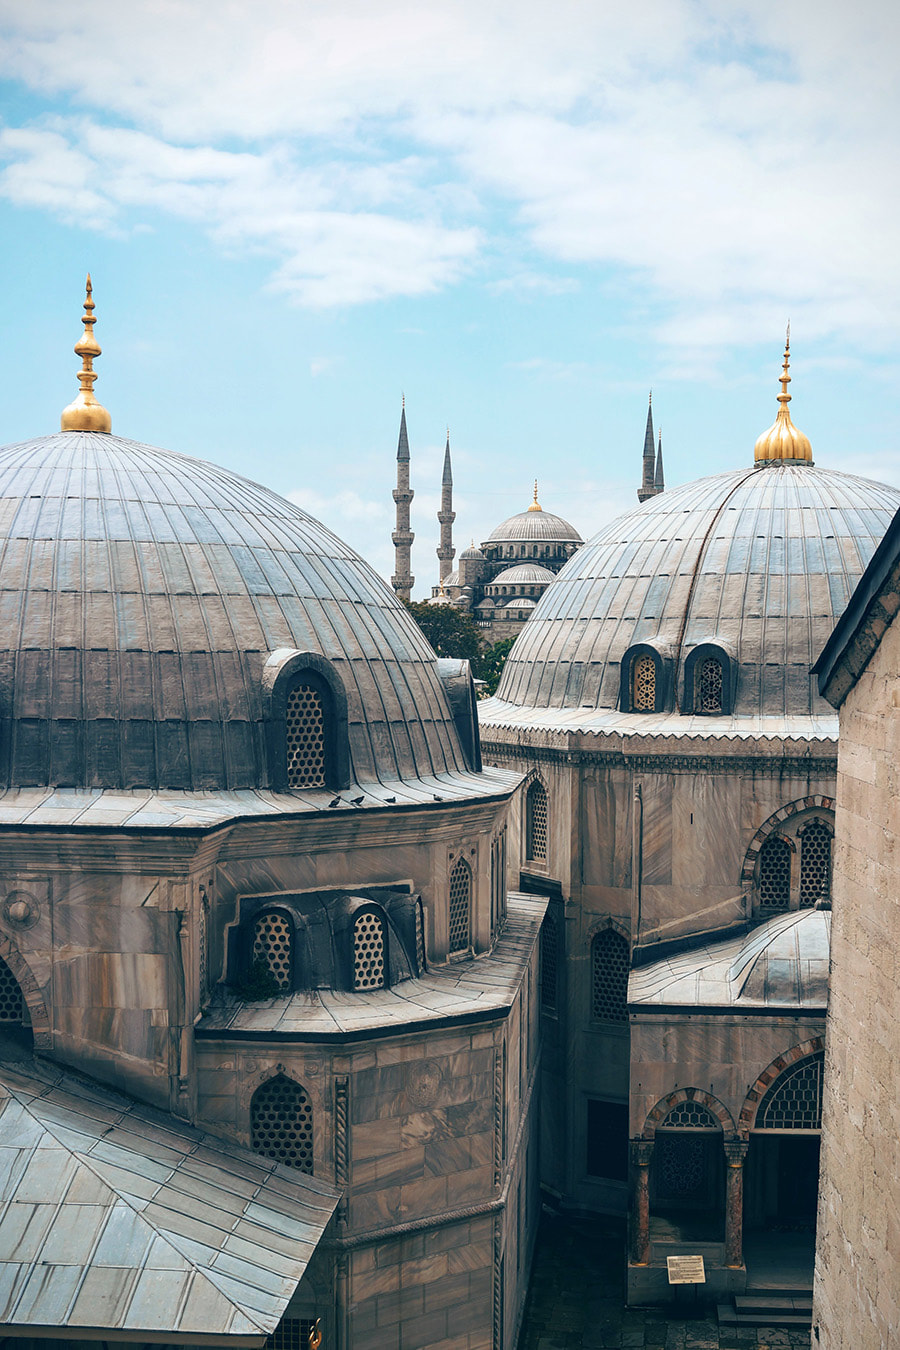 Beautiful Mosques fill the skyline in Istanbul, Turkey